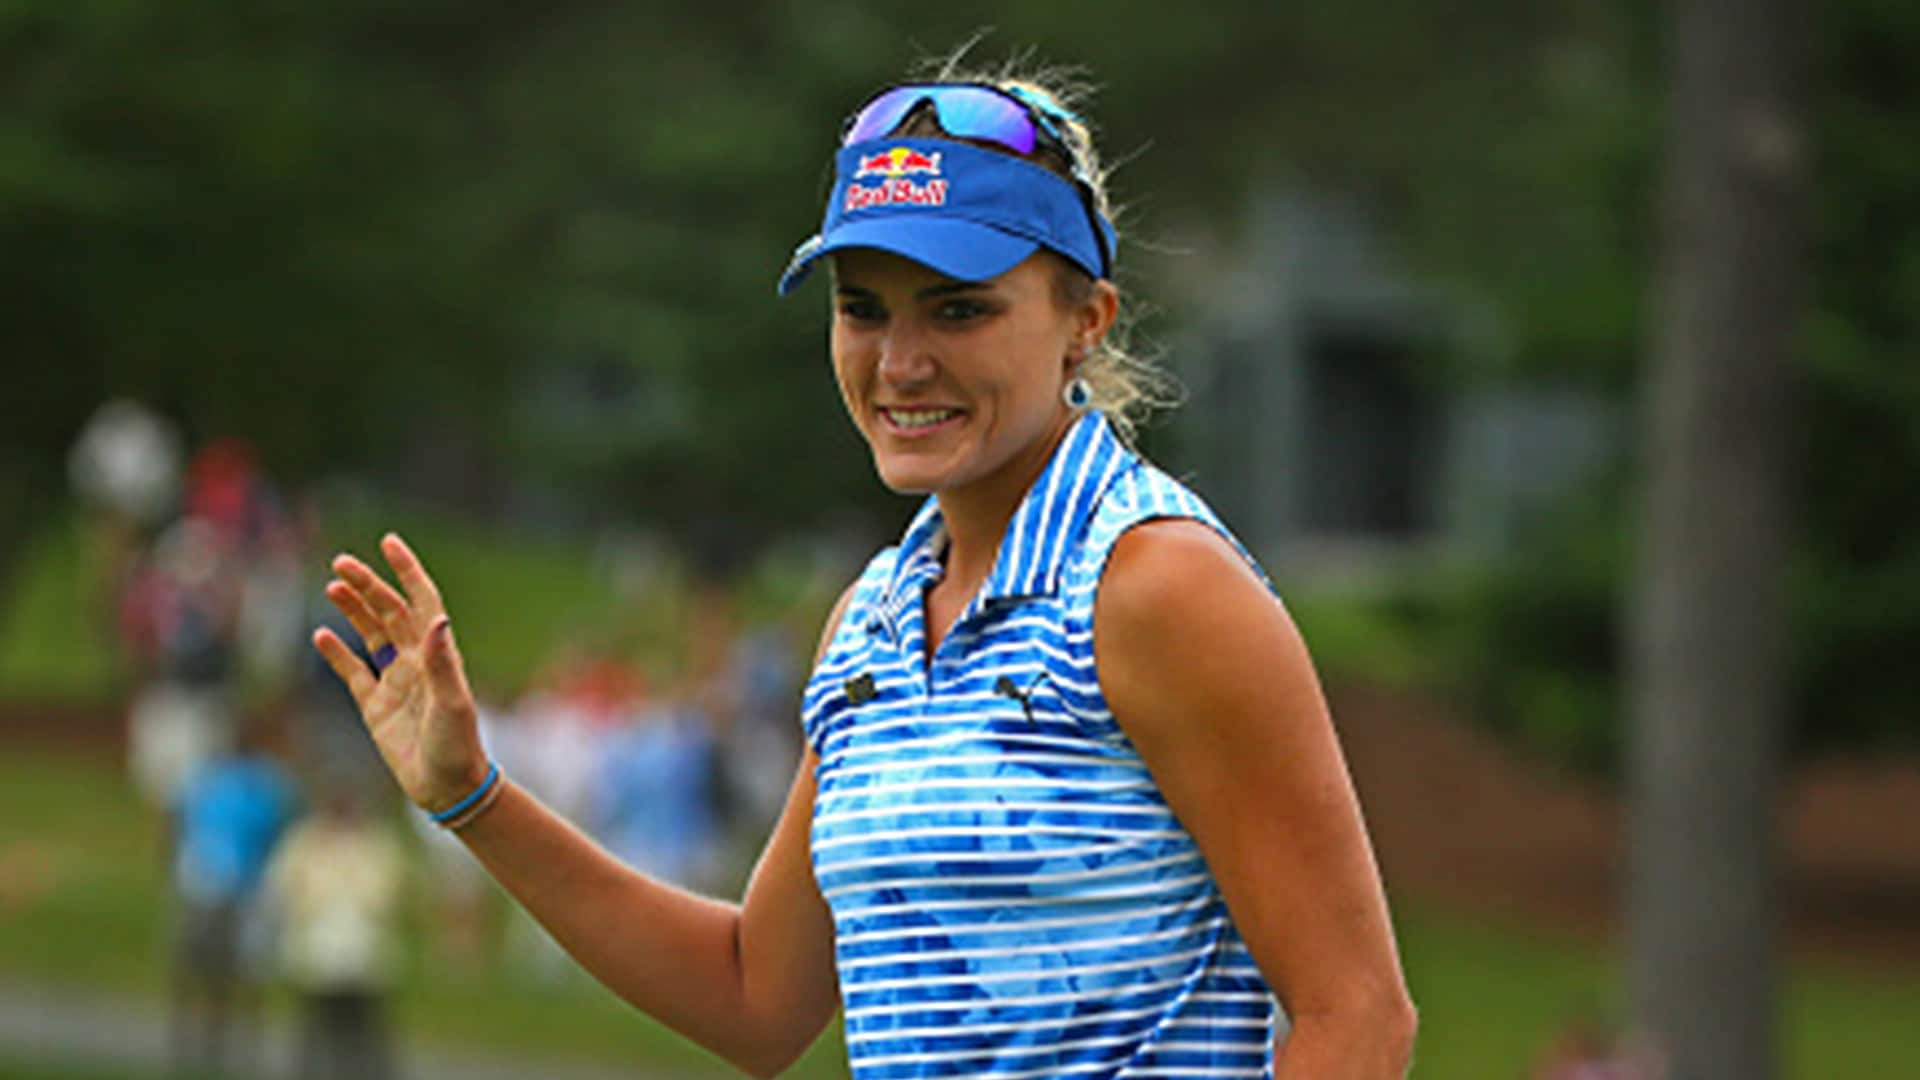 Dominating Lexi Thompson Reigns At Kingsmill Golf Channel